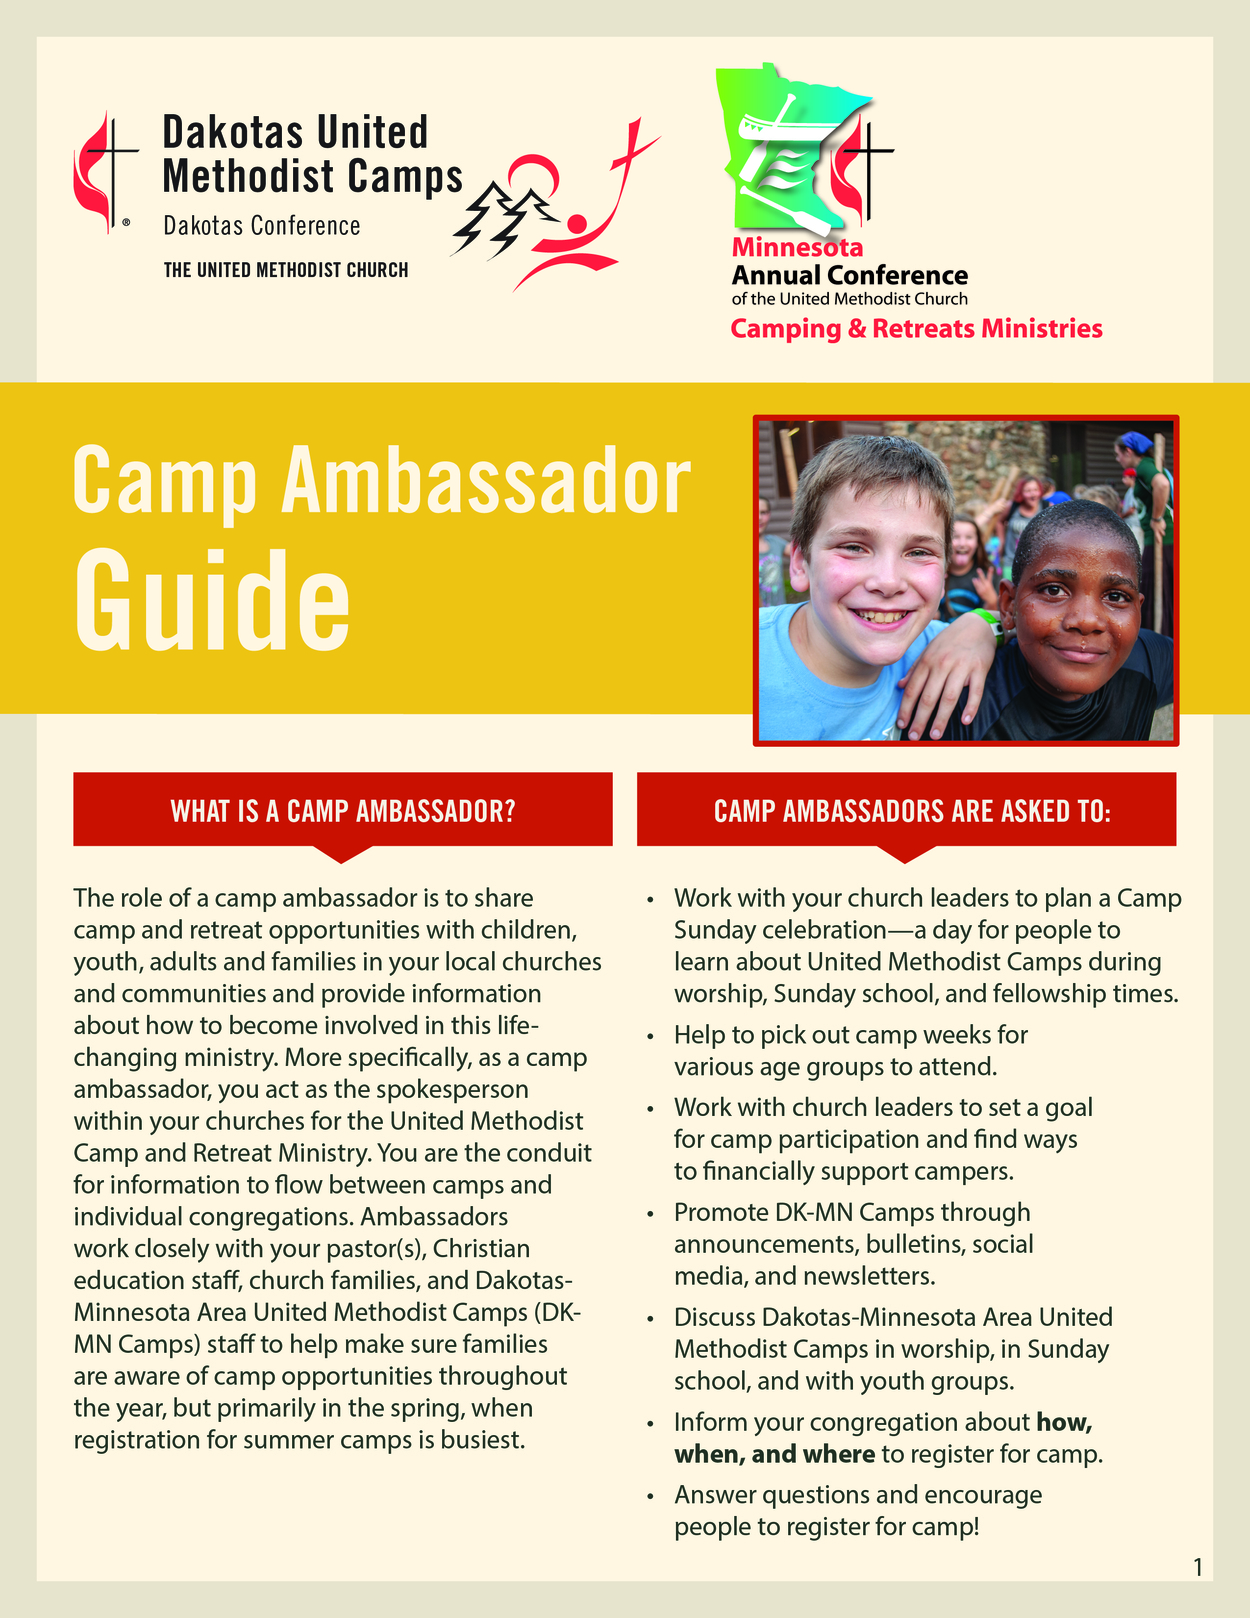 Camp Ambassador Guide